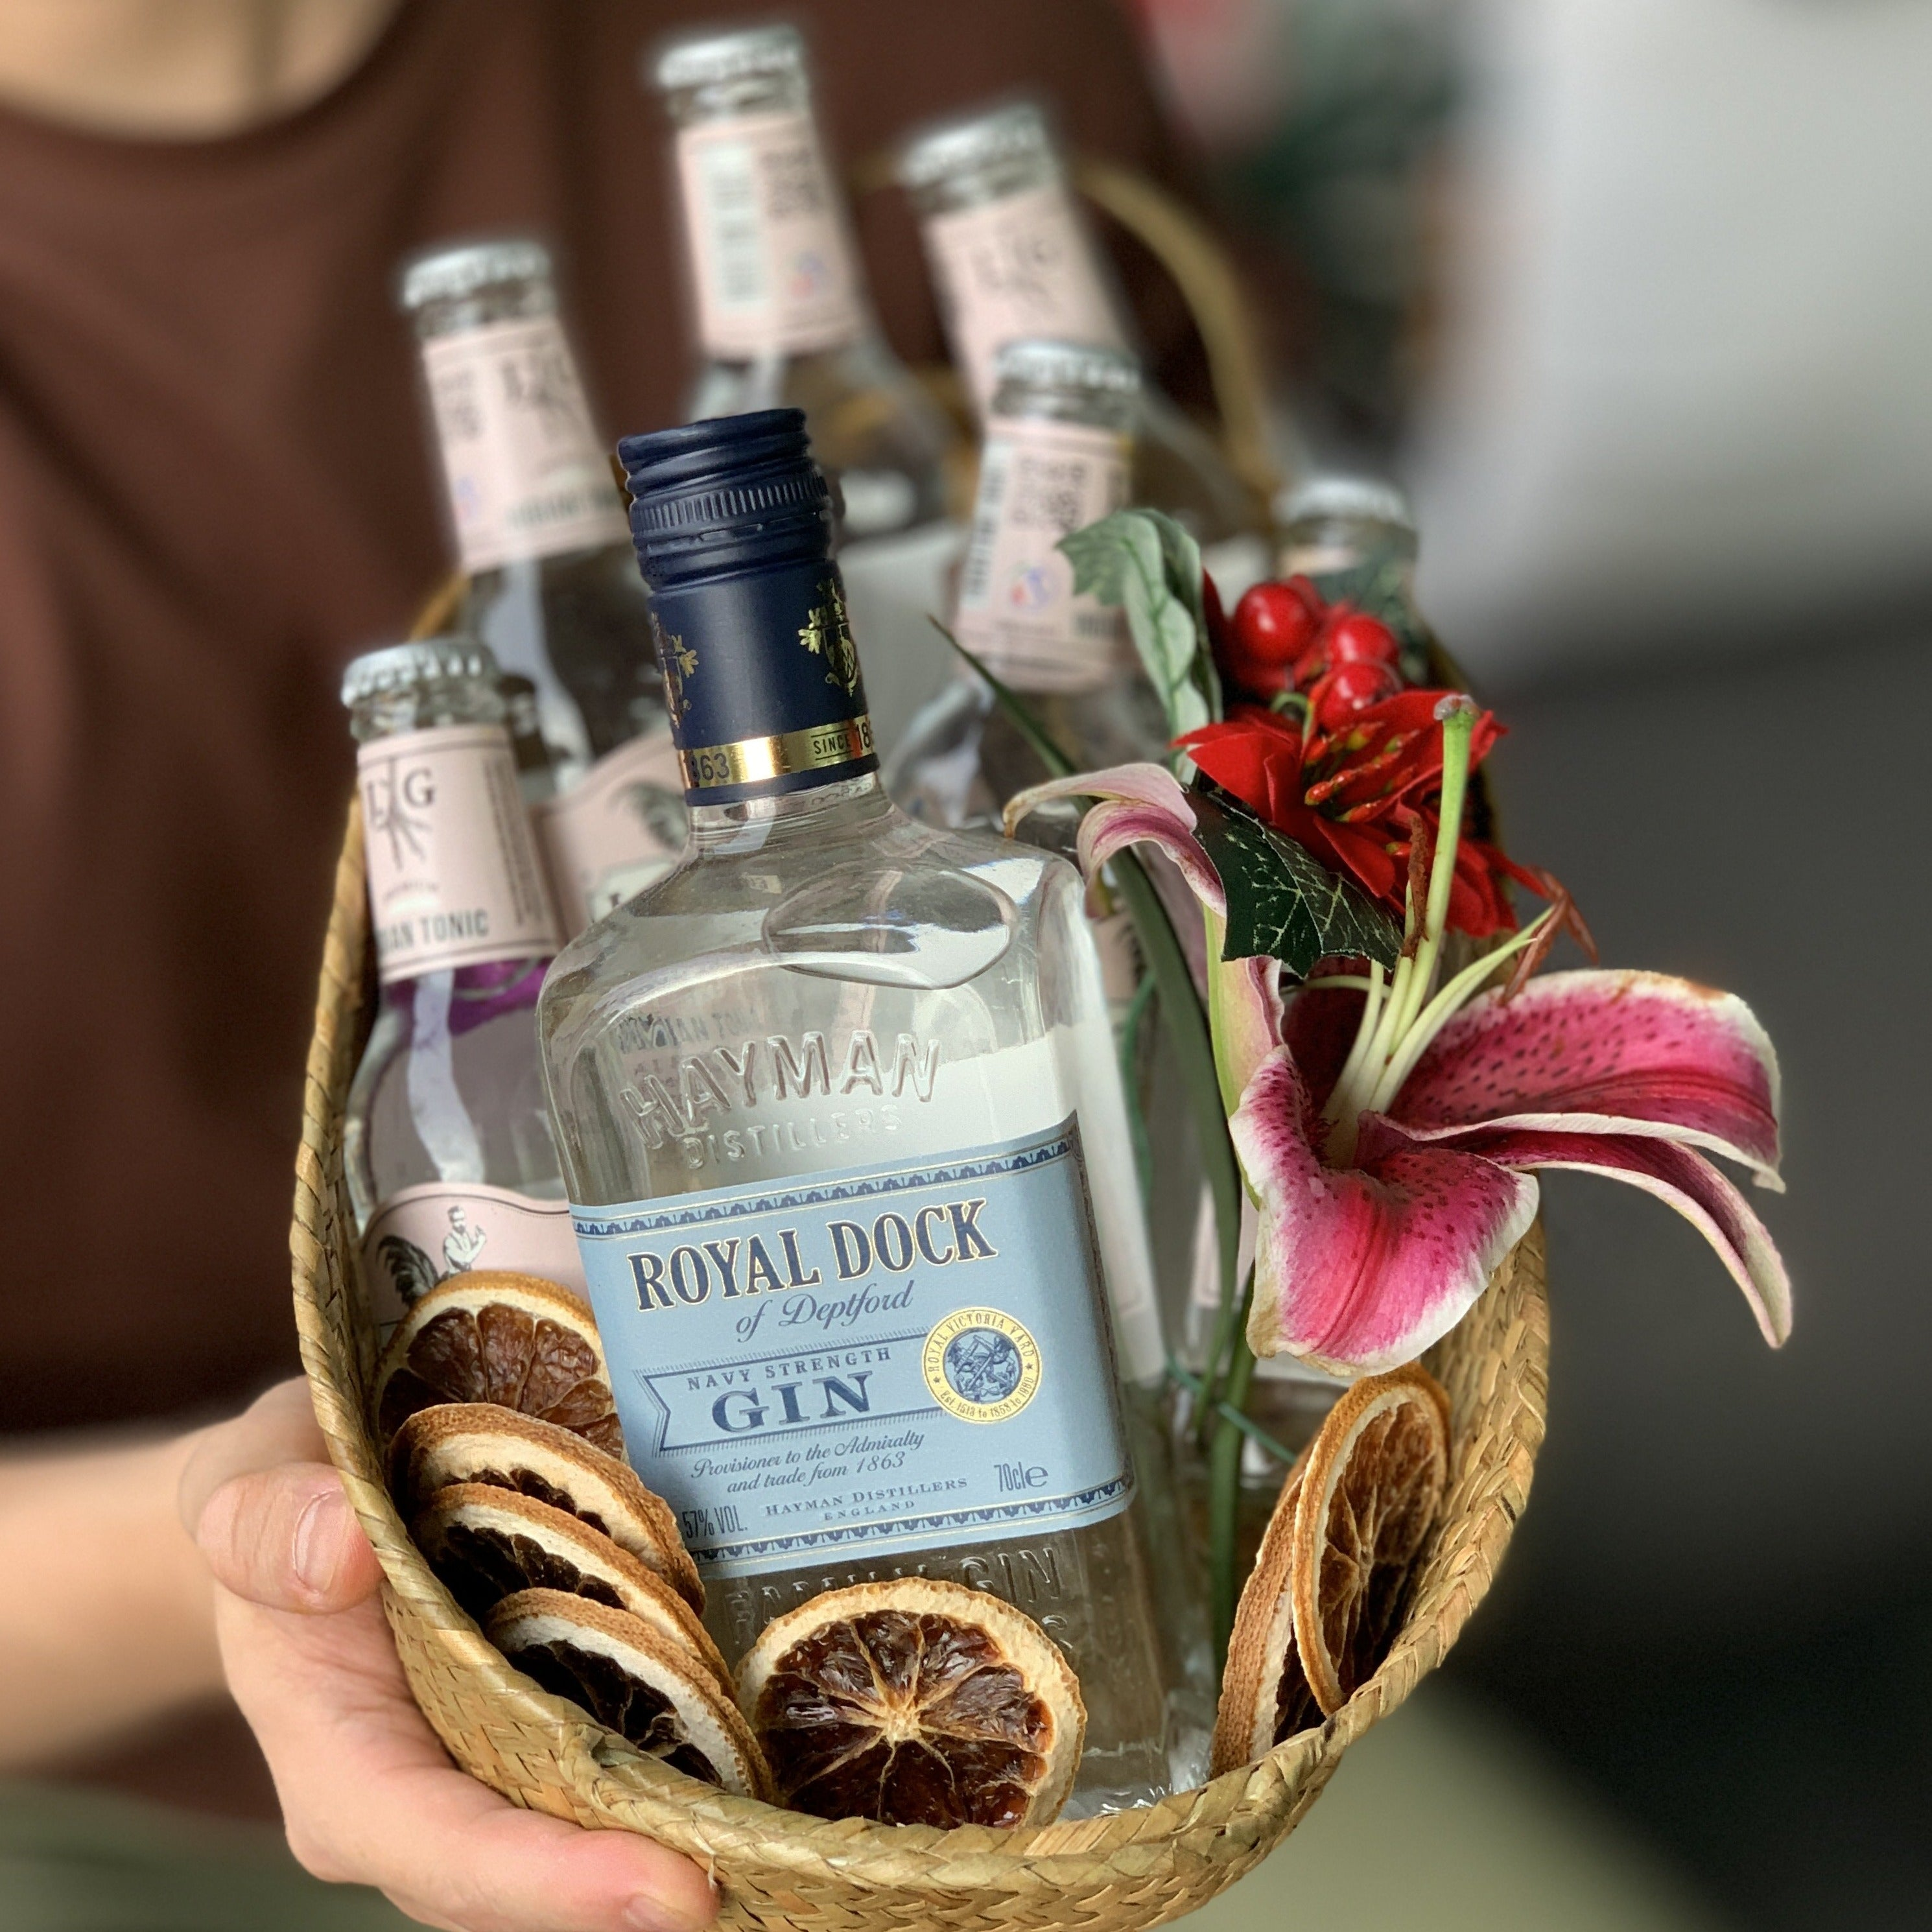 Hayman's Royal Dock Gin Tonic Christmas Hamper